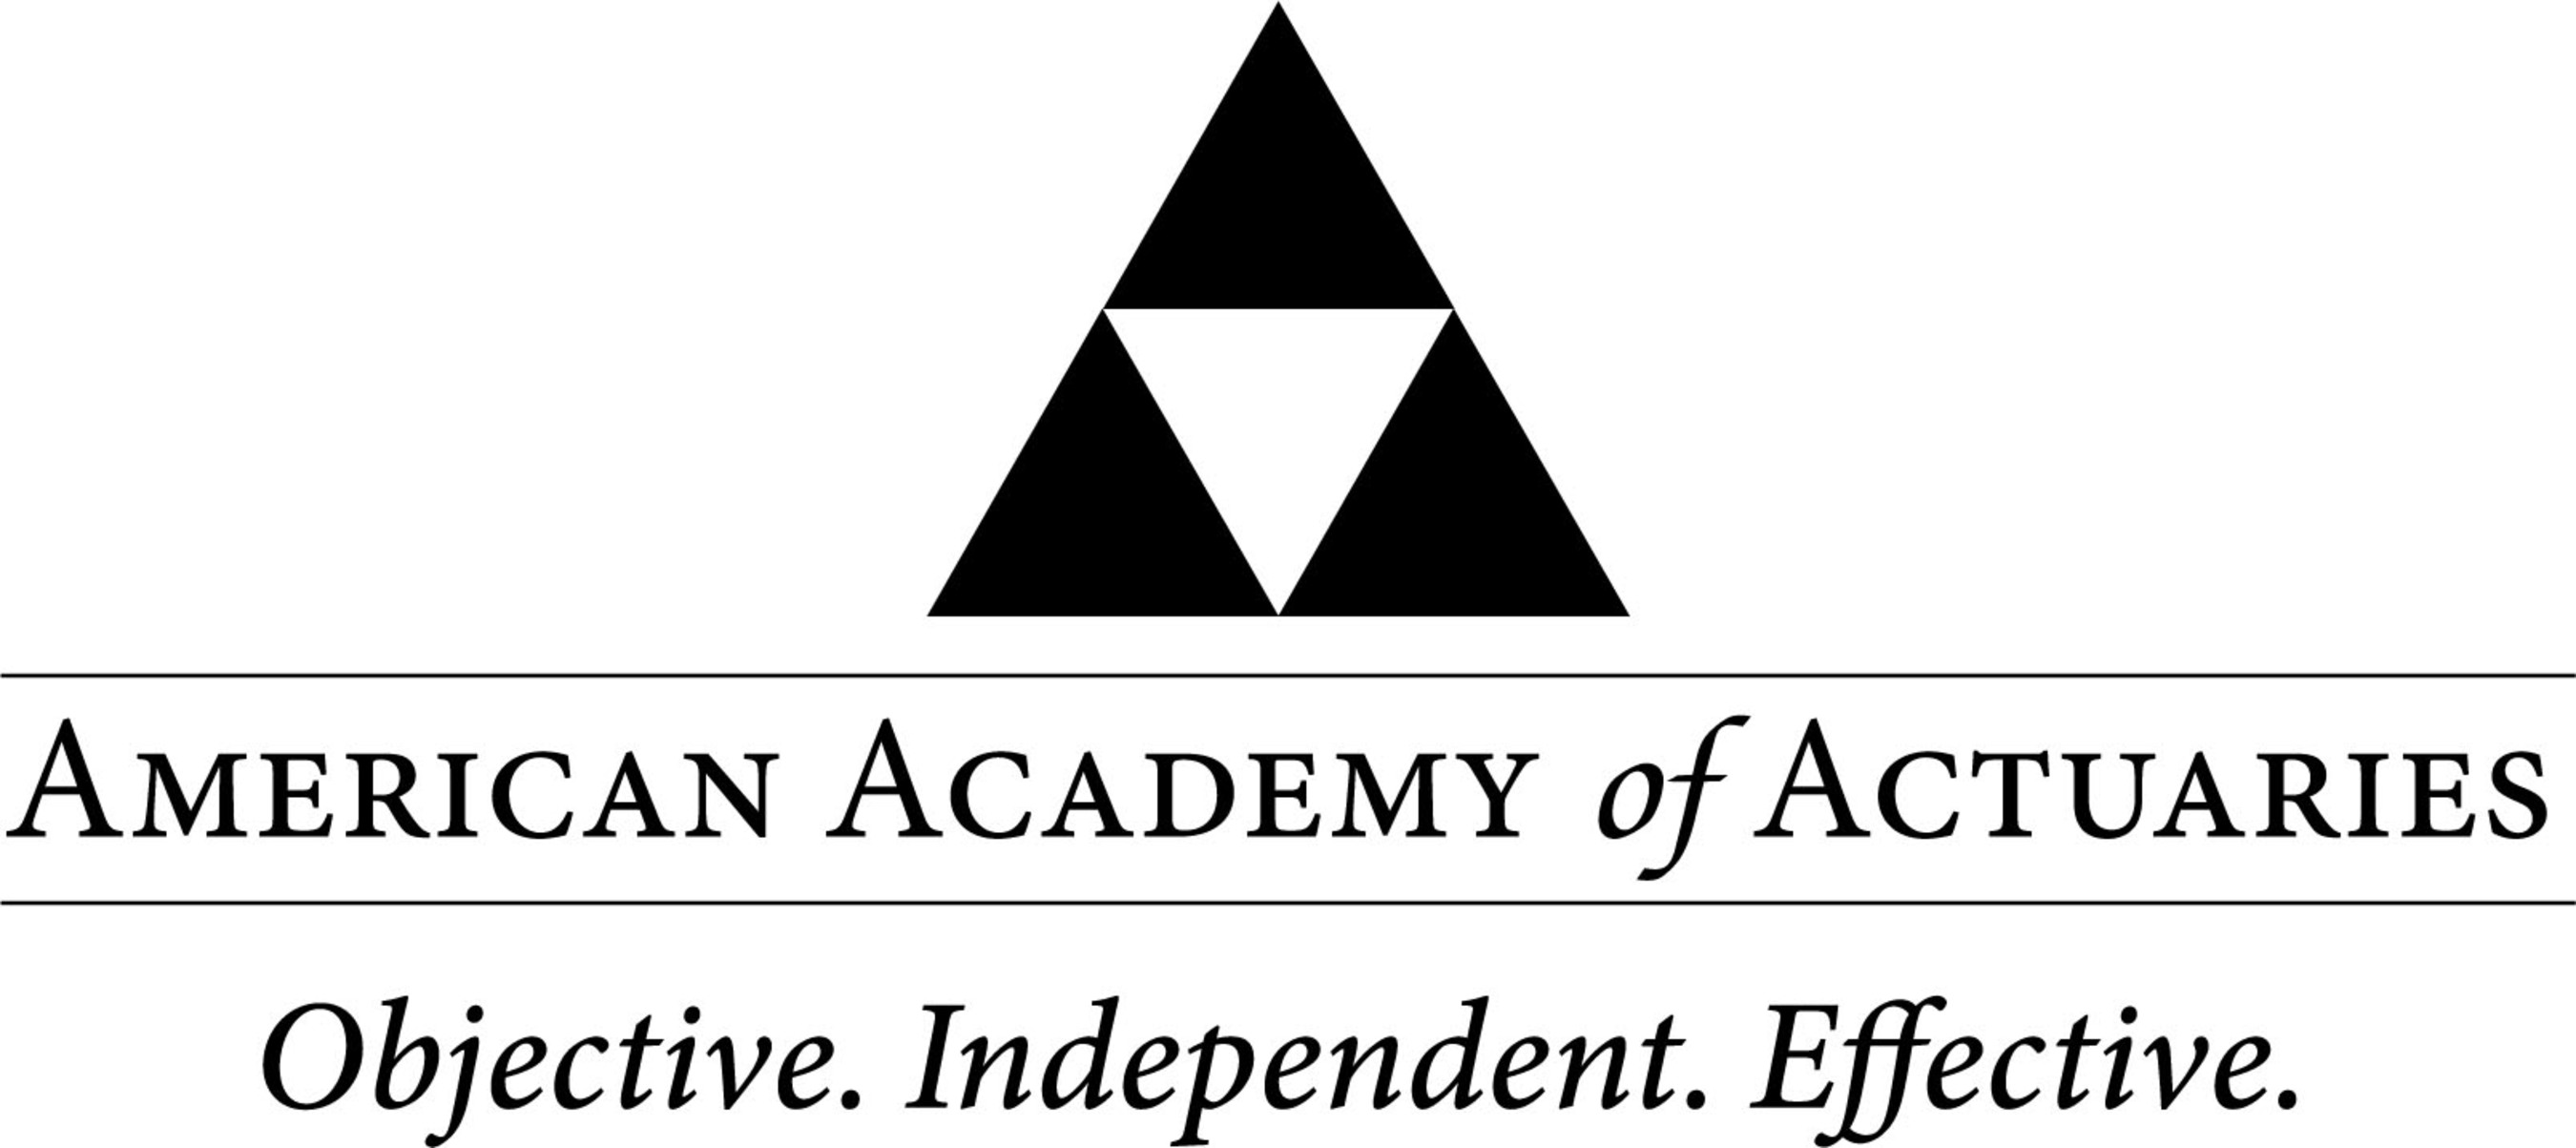 American Academy of Actuaries.